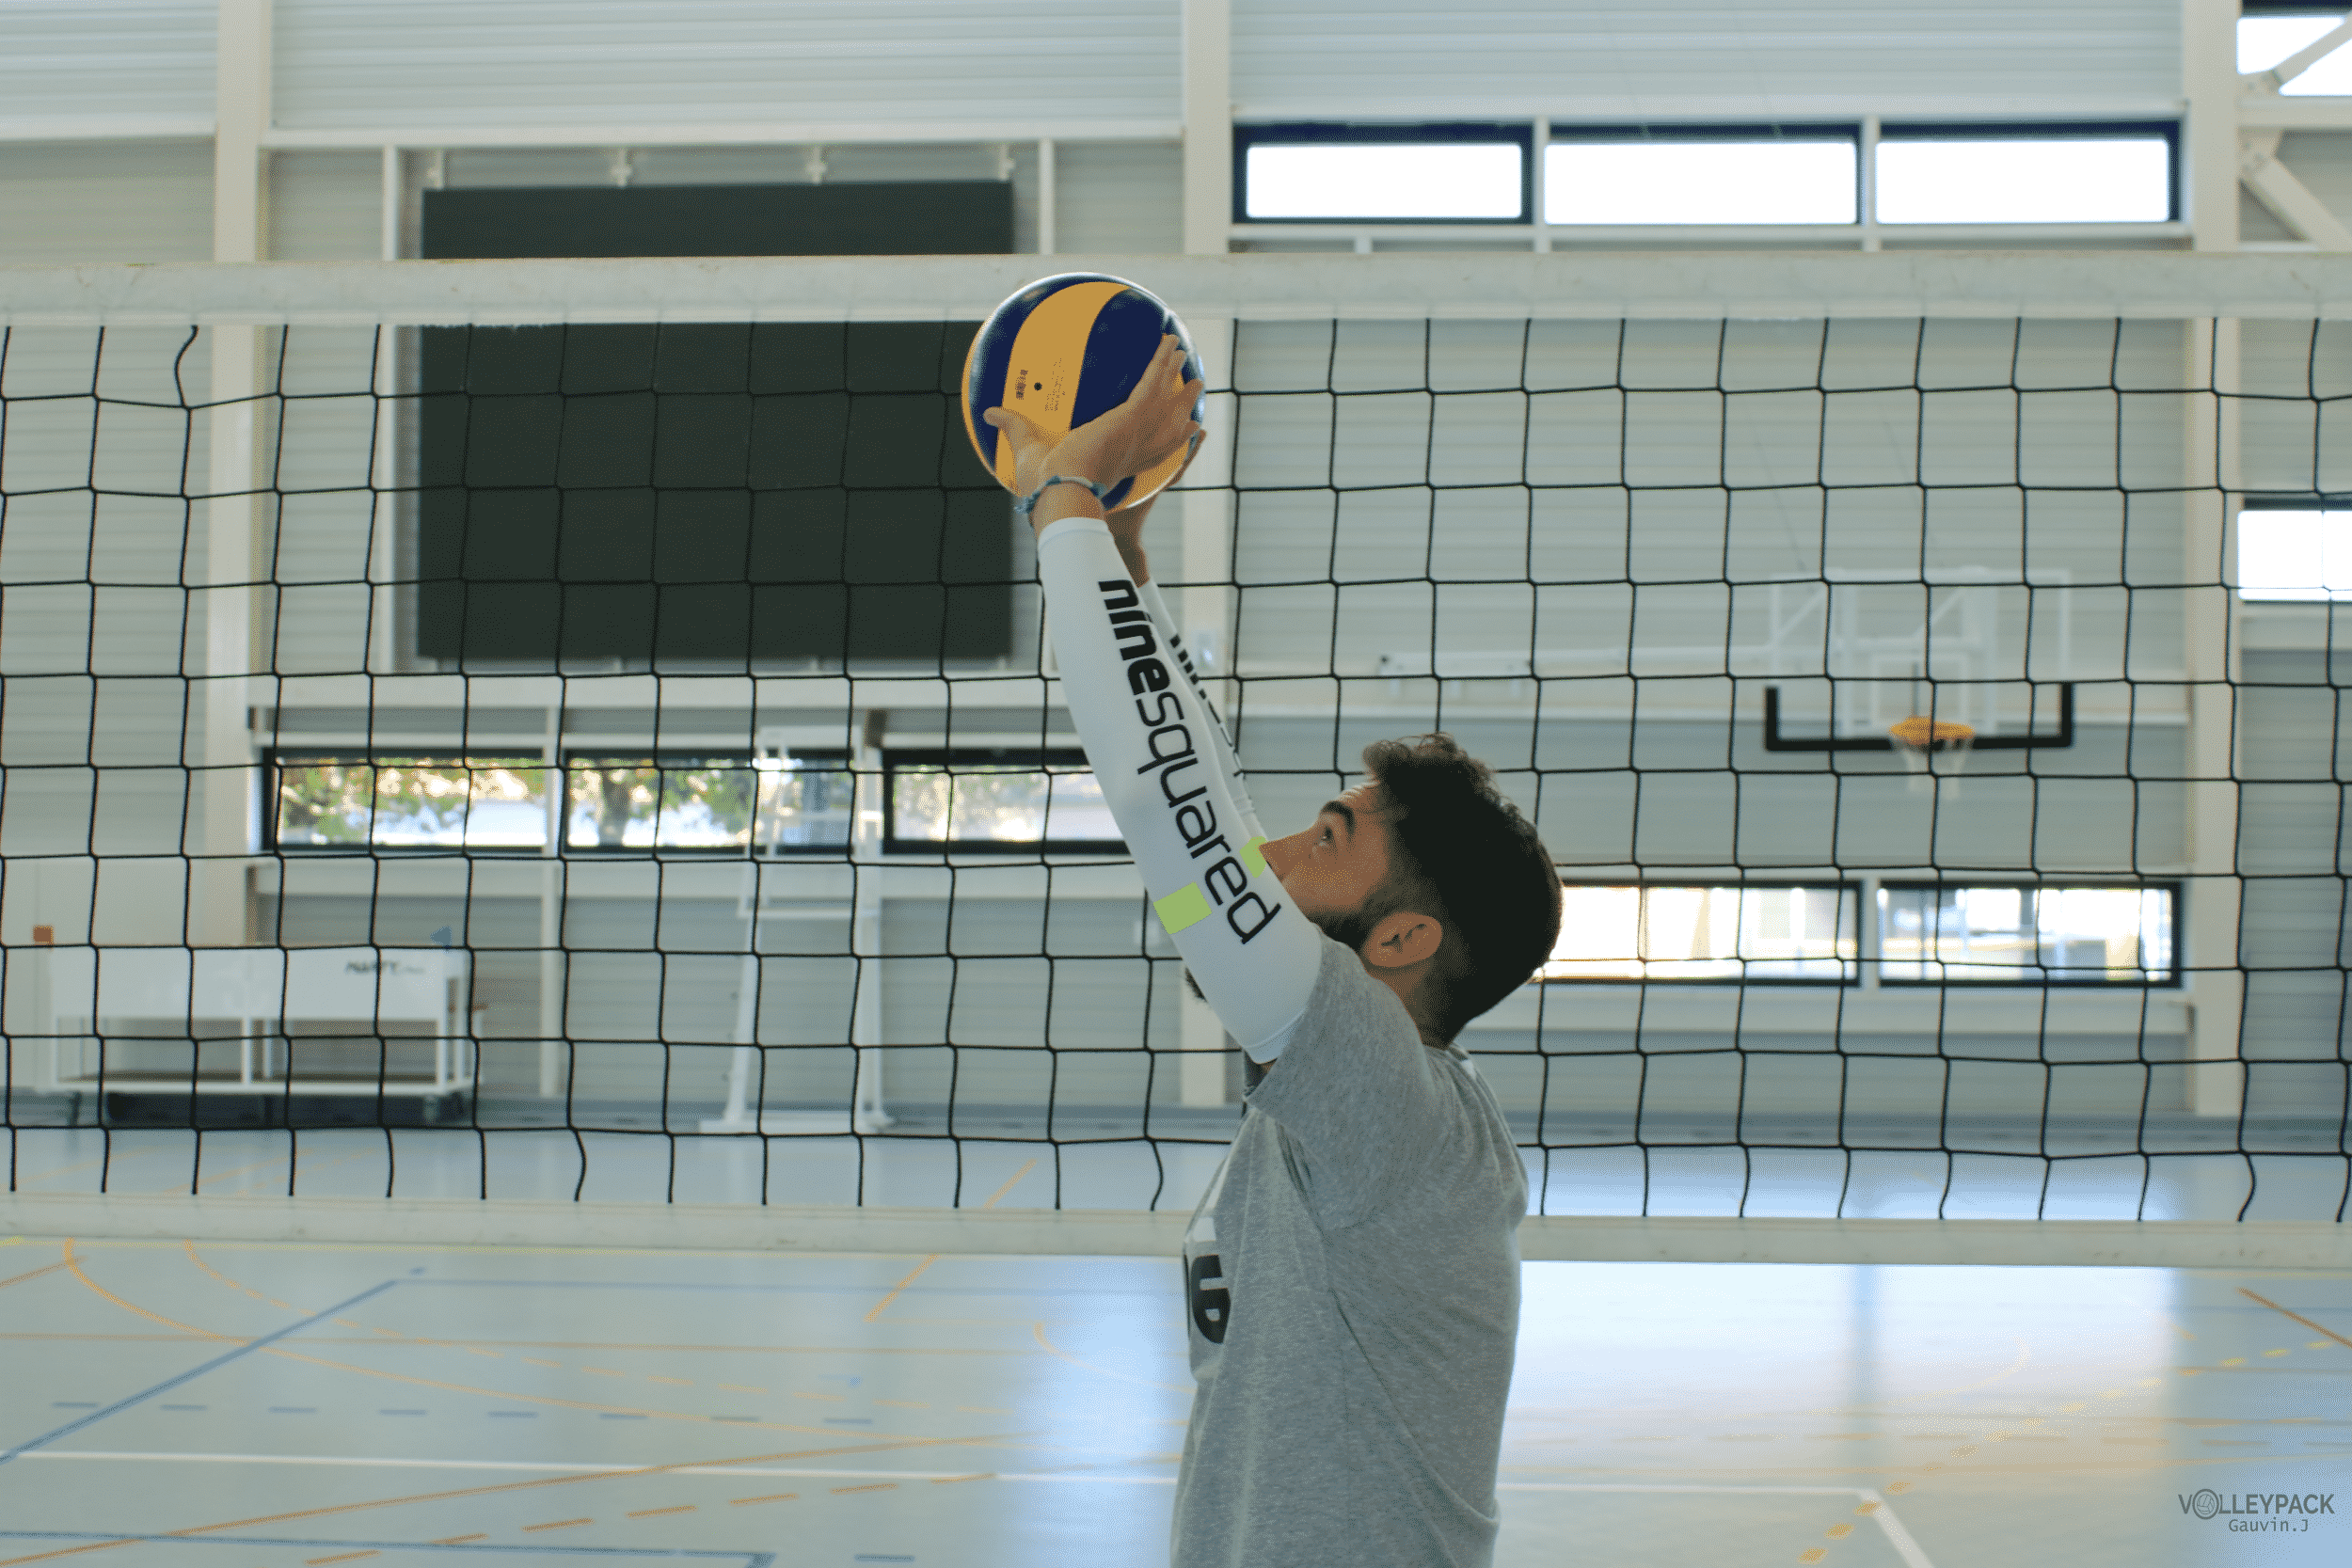 test-volleypack-manchons-volley-ninesquared-arm-sleeves-2019-10